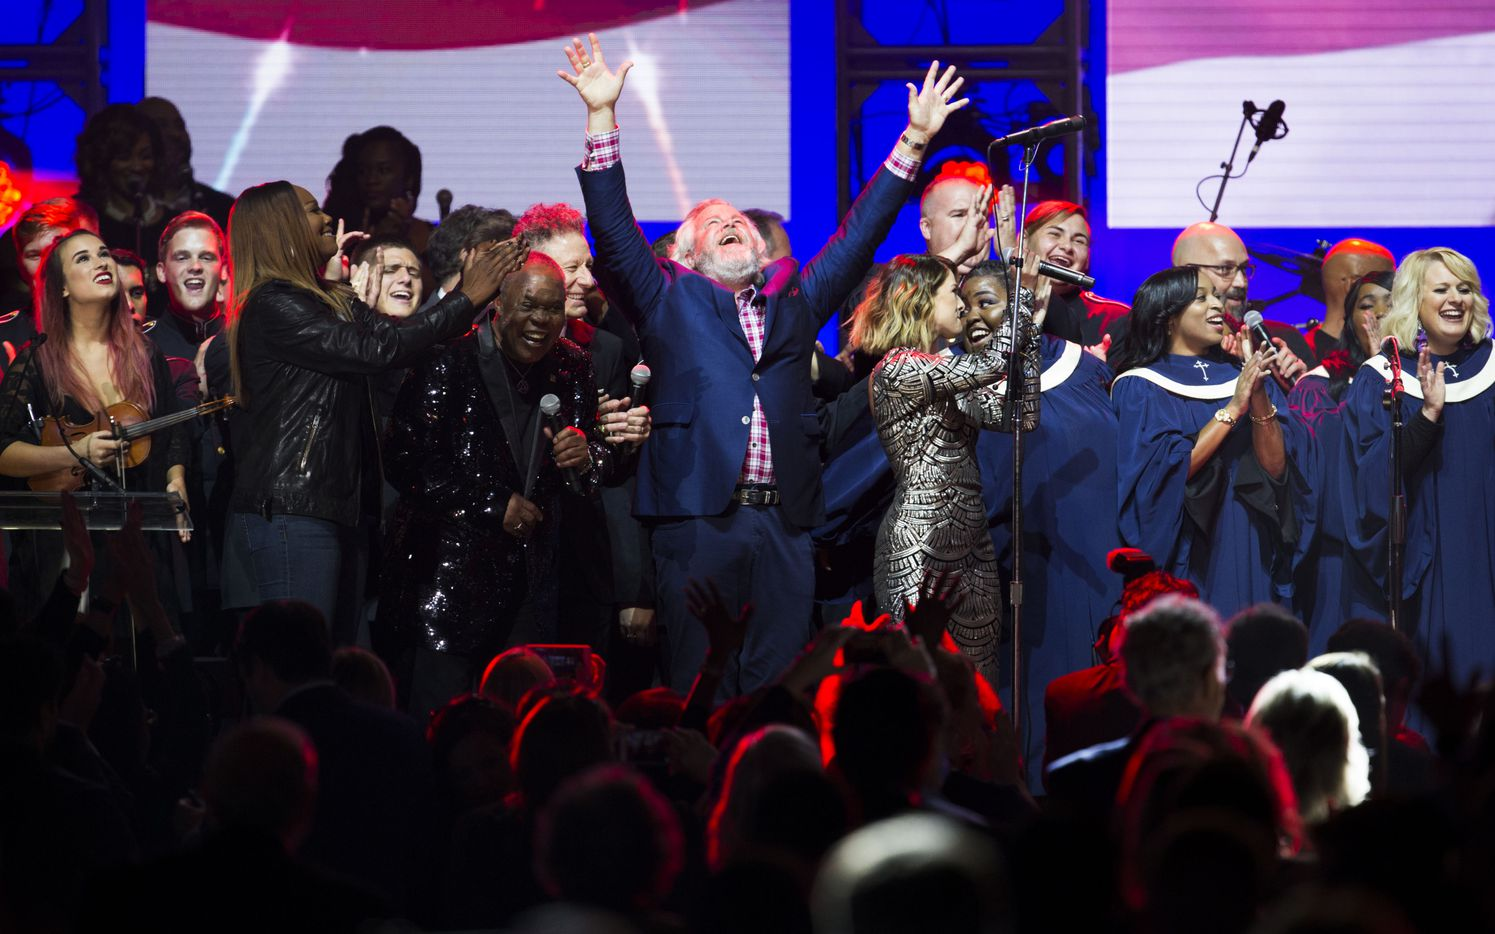 Yolanda Adams, Sam Moore, Lyle Lovett, Robert Earl Keen, Cassadee Pope and other performers celebrate on stage during the finale of Deep from the Heart: The One America Appeal Concert on Saturday, October 21, 2017 at Reed Arena on the Texas A&M University campus in College Station, Texas.